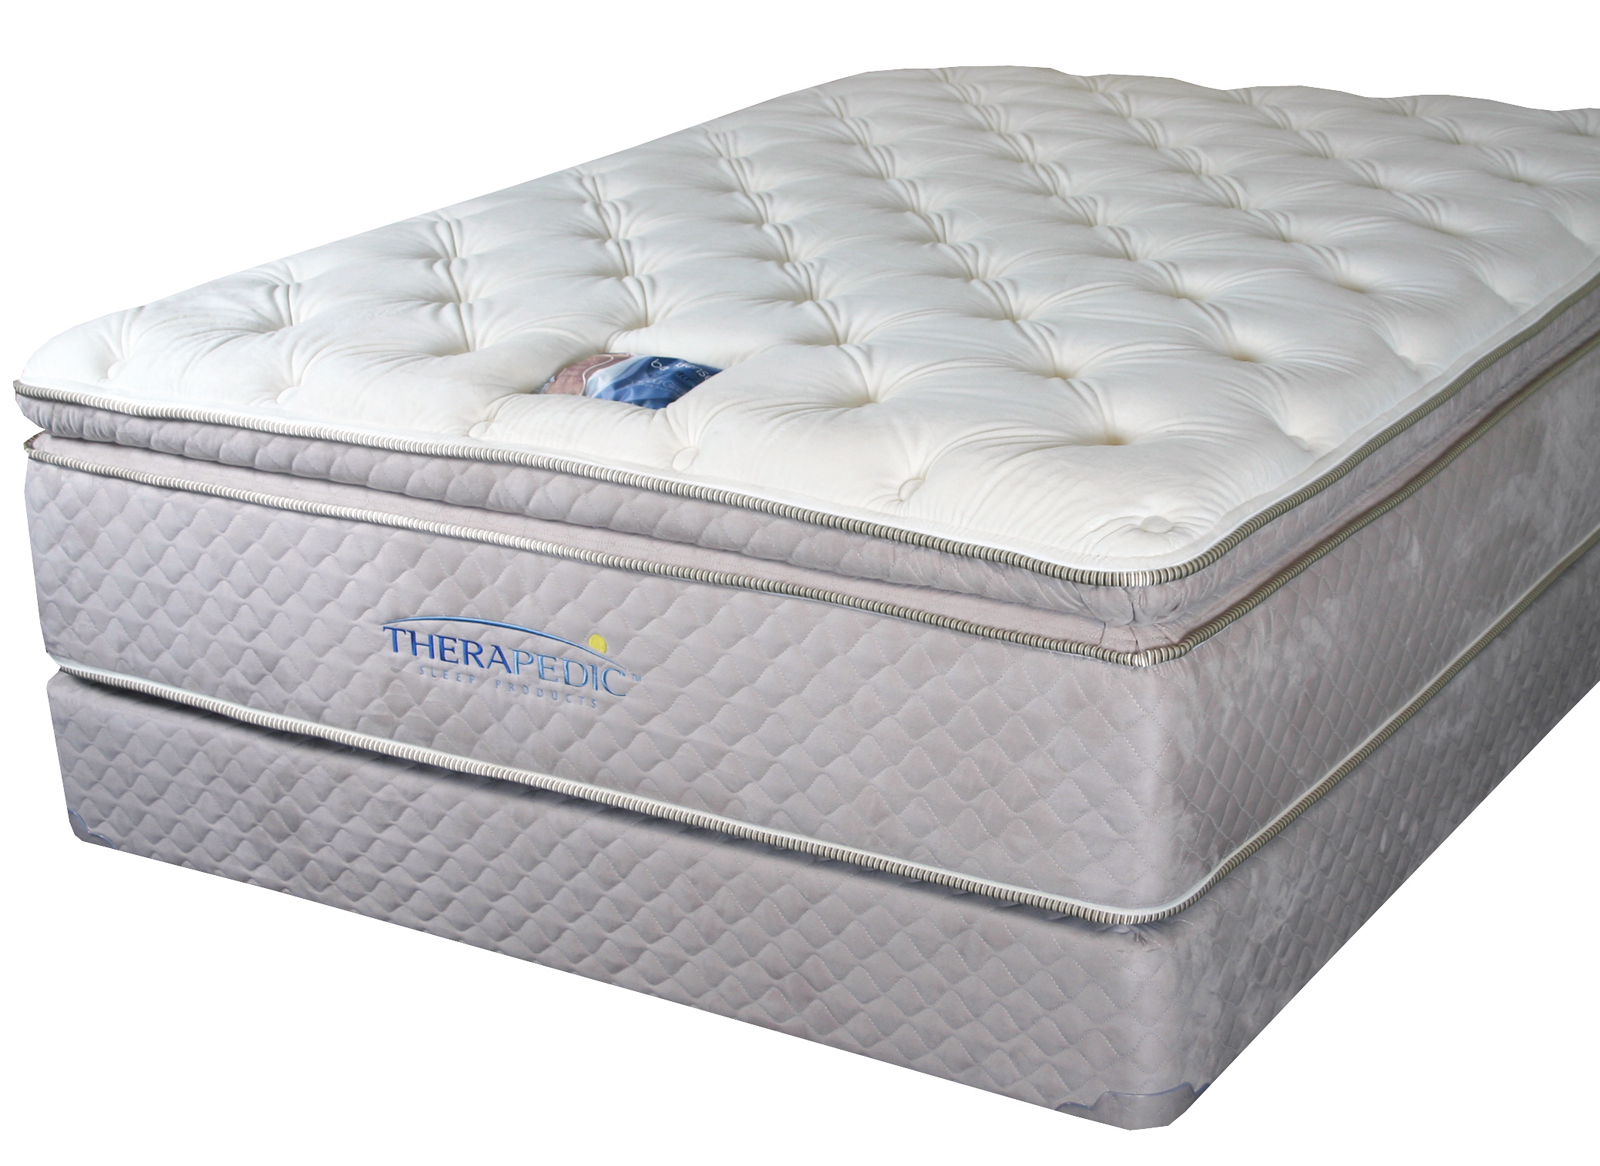 Therapedic Backsense Pillow Top Mattresses